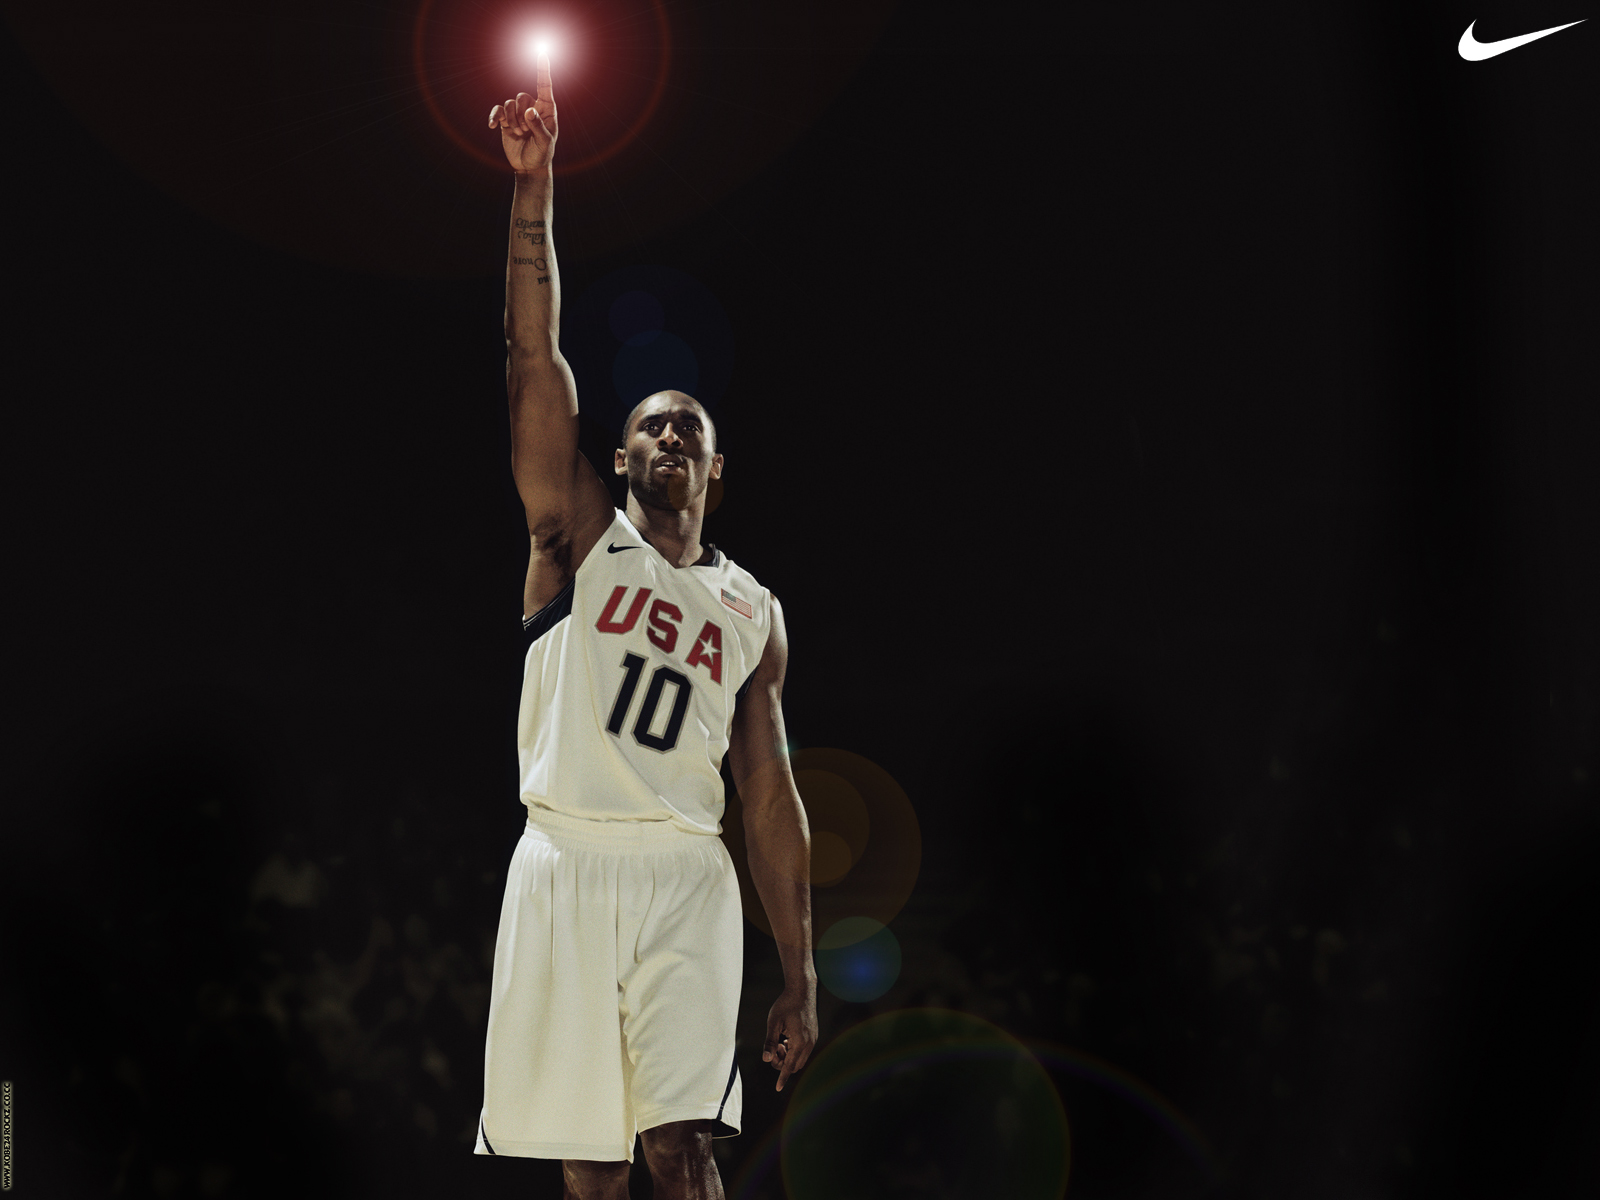 Kobe bryant nike wallpaper kobe bryant high definition wallpapers nike voltagebd Gallery